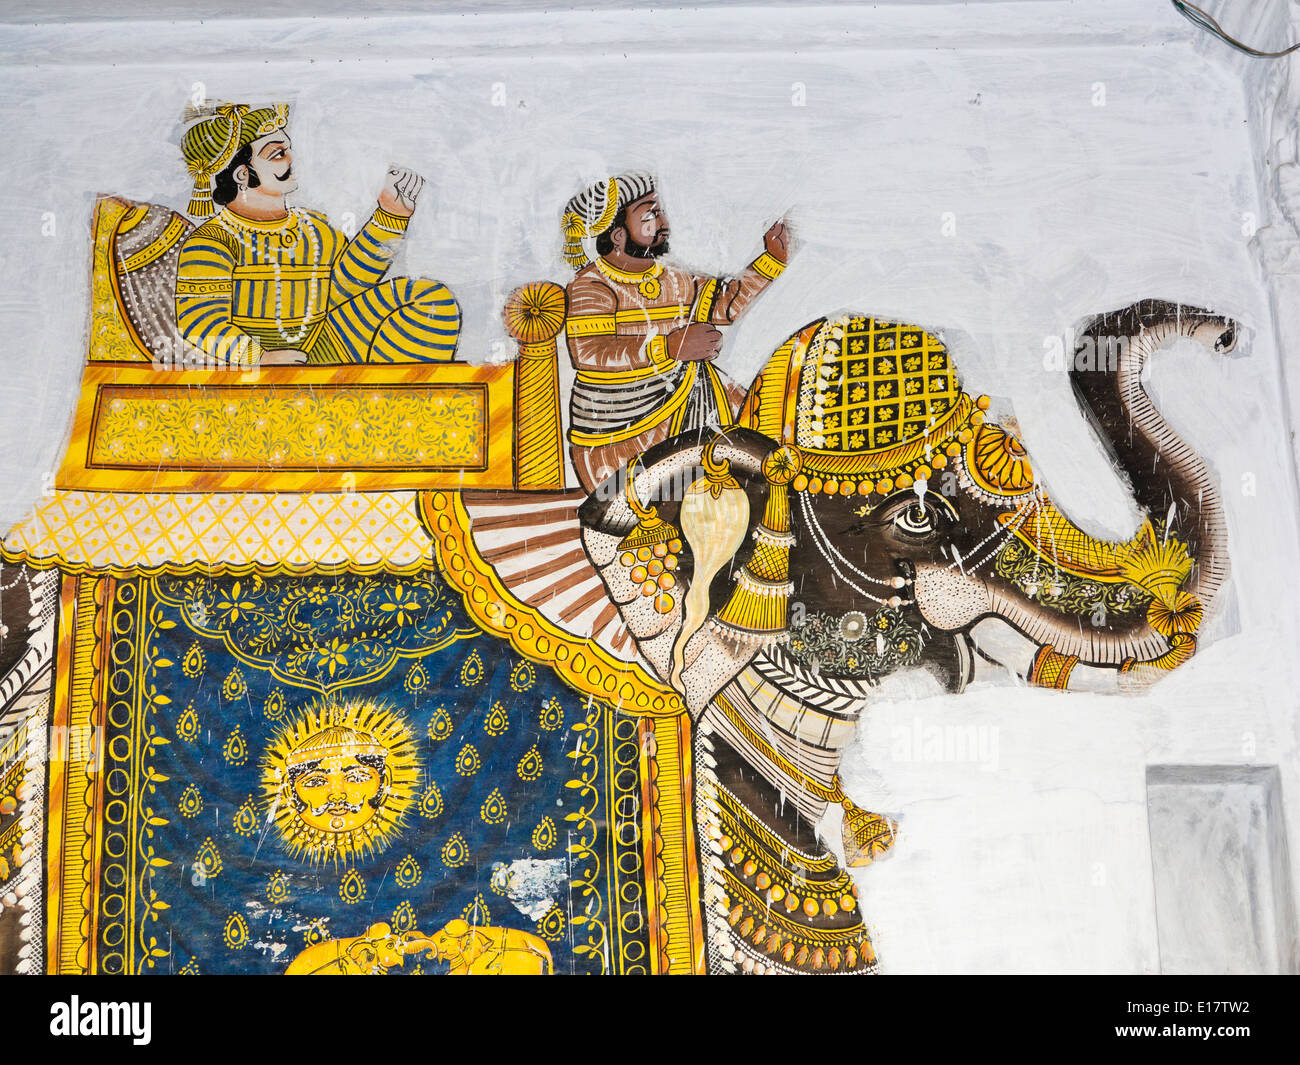 India, Rajasthan, Udaipur, traditional wall painting of Rajput men ...